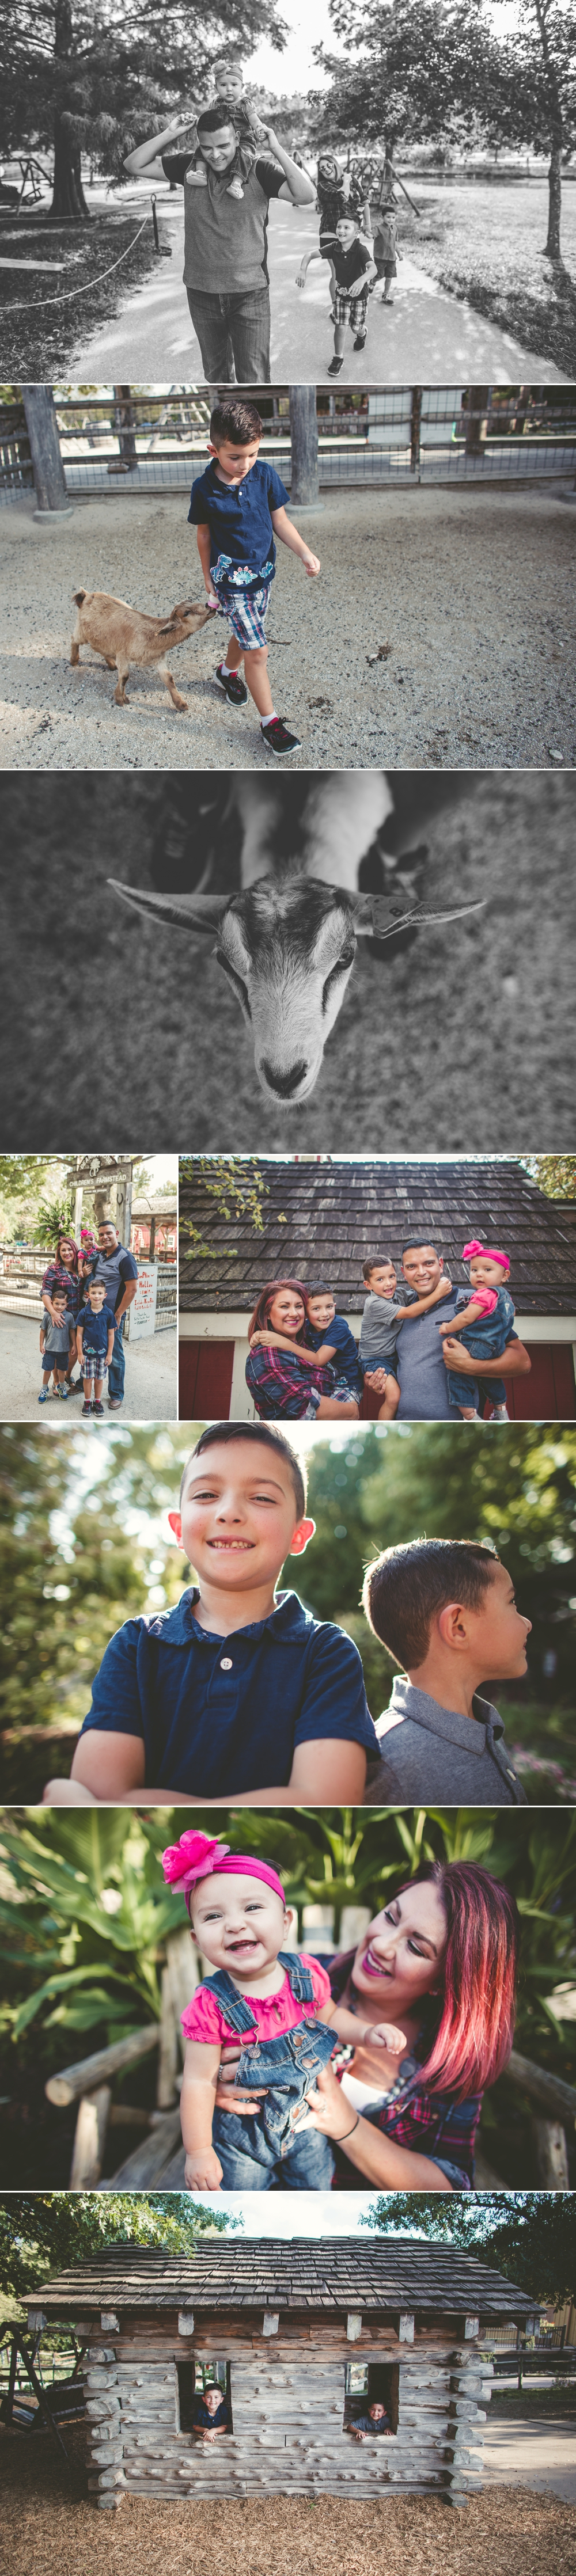 jason_domingues_photography_kansas_city_family_portraits_kc_photo_session_deanna_rose0001.JPG